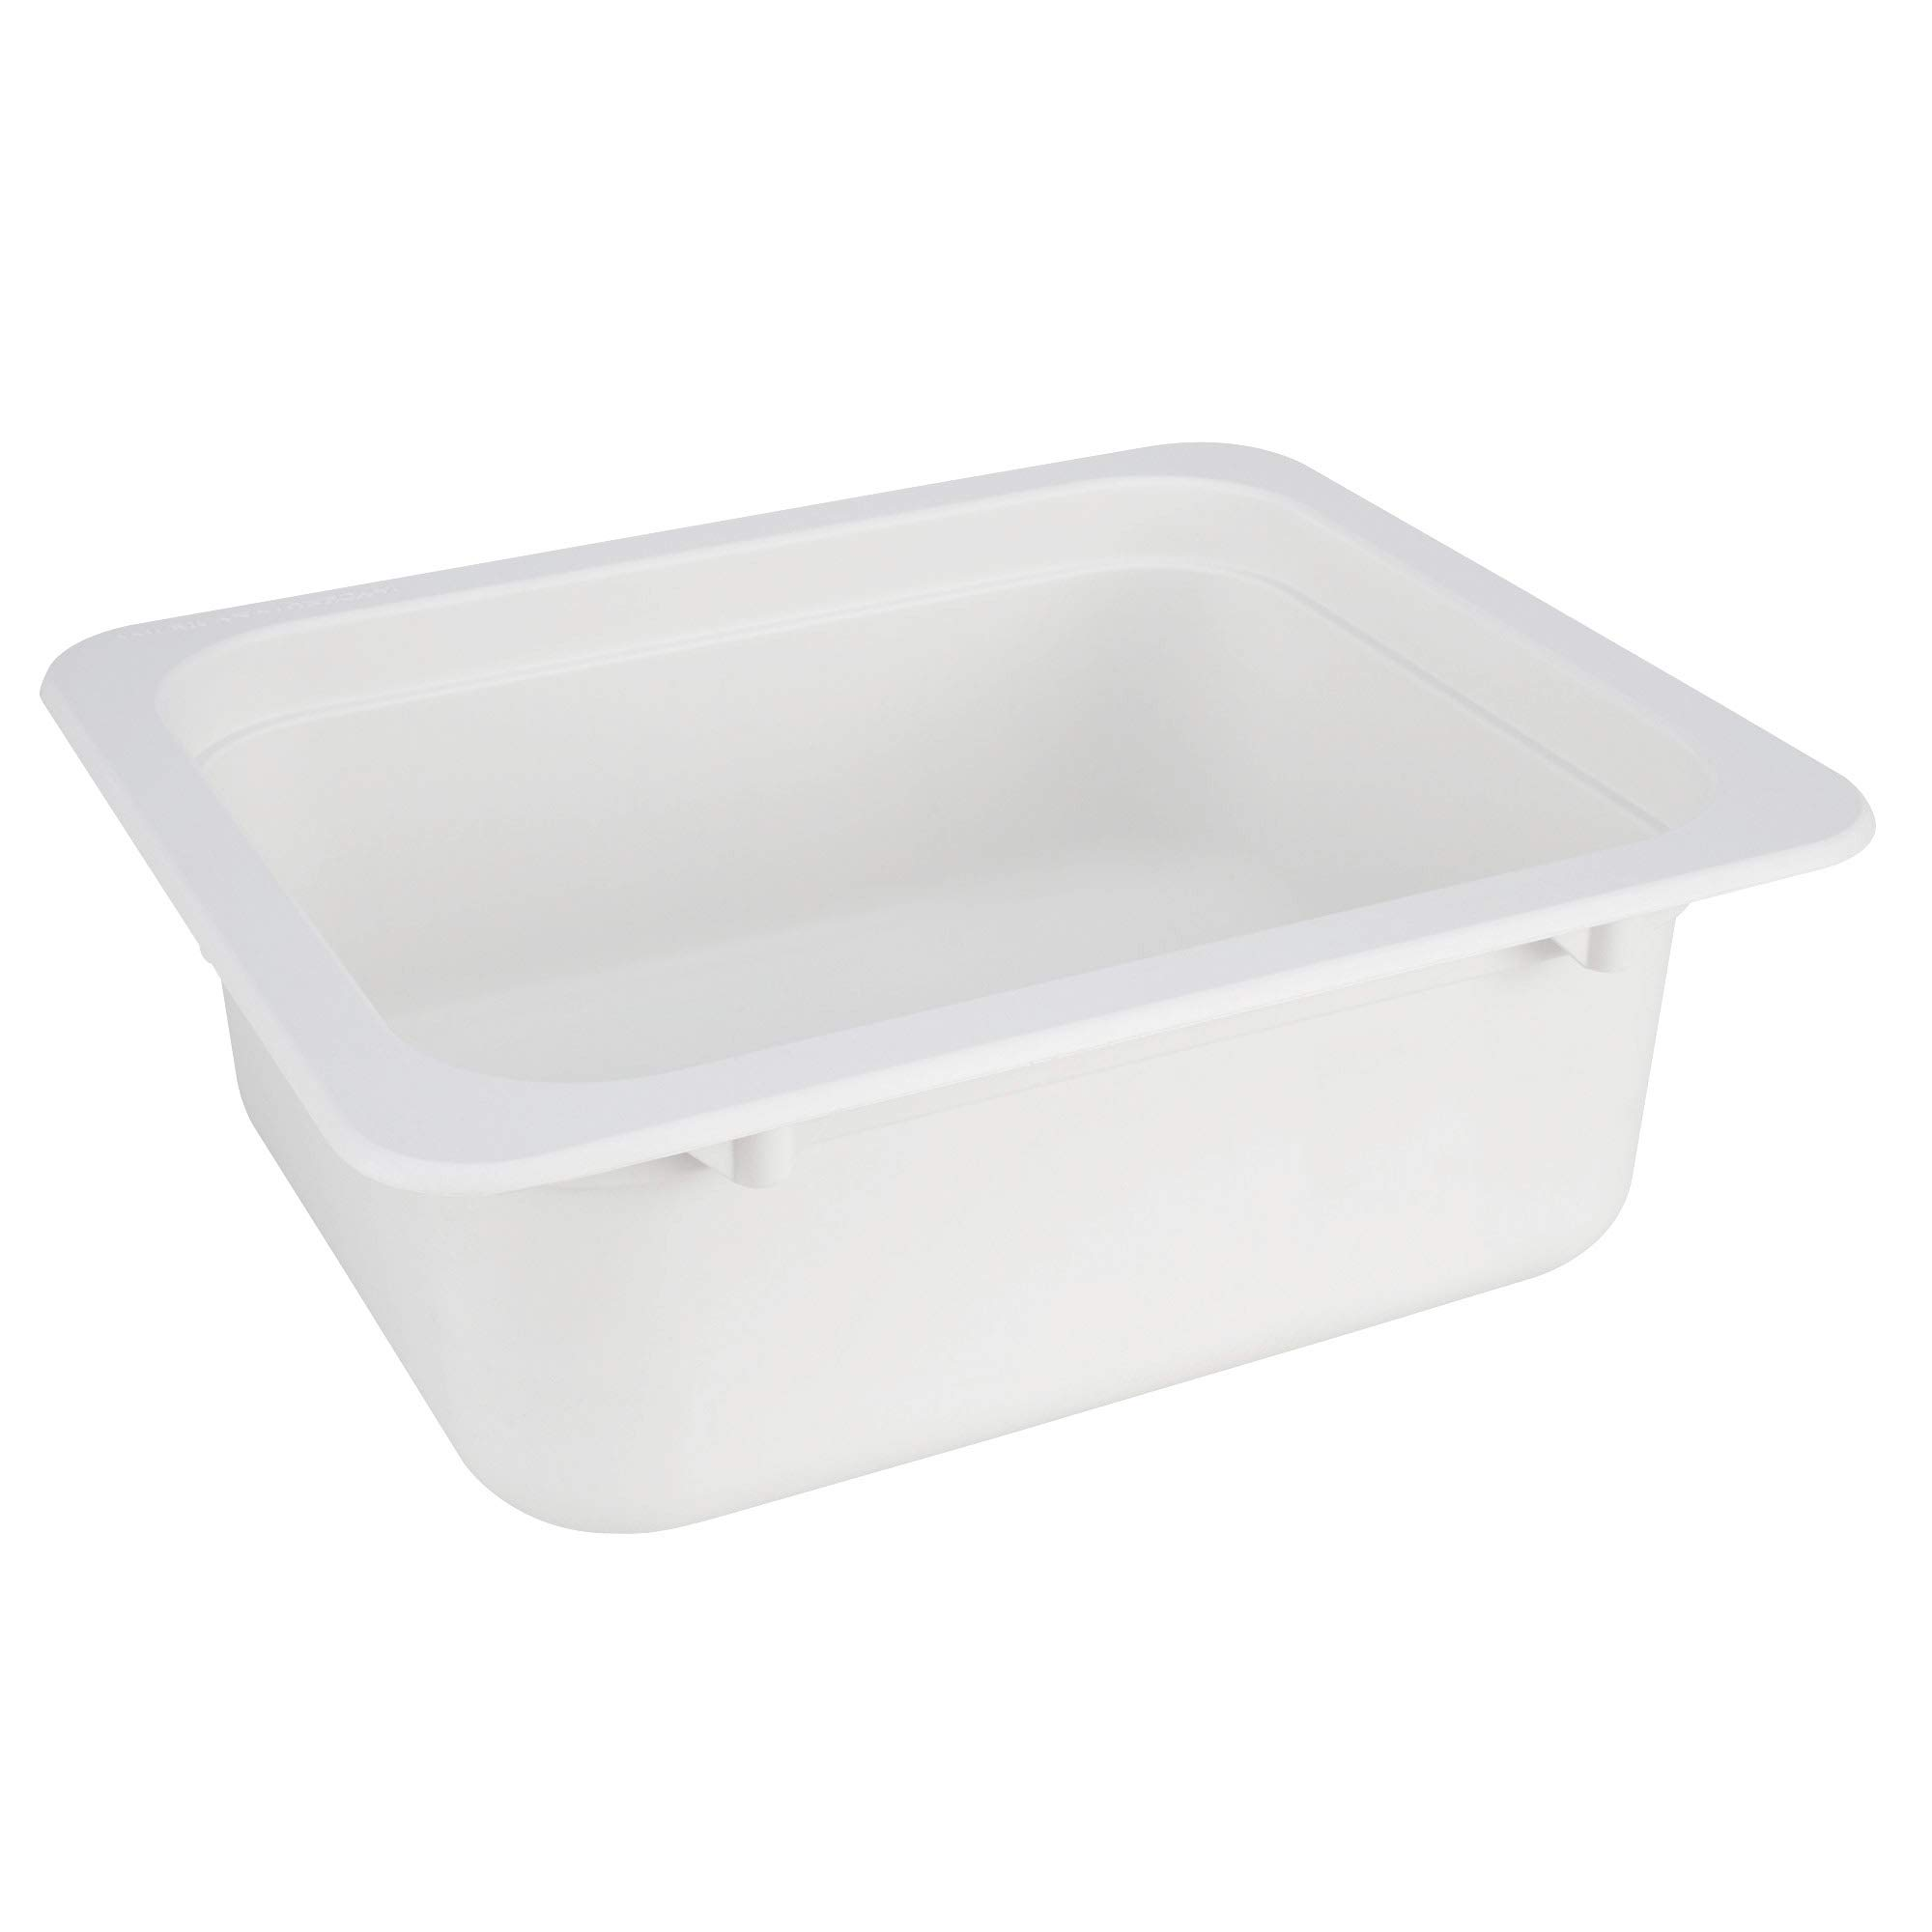 RV Sink | 13'' X 15'' Composite Bar Sink | White or Granite Black | (White)